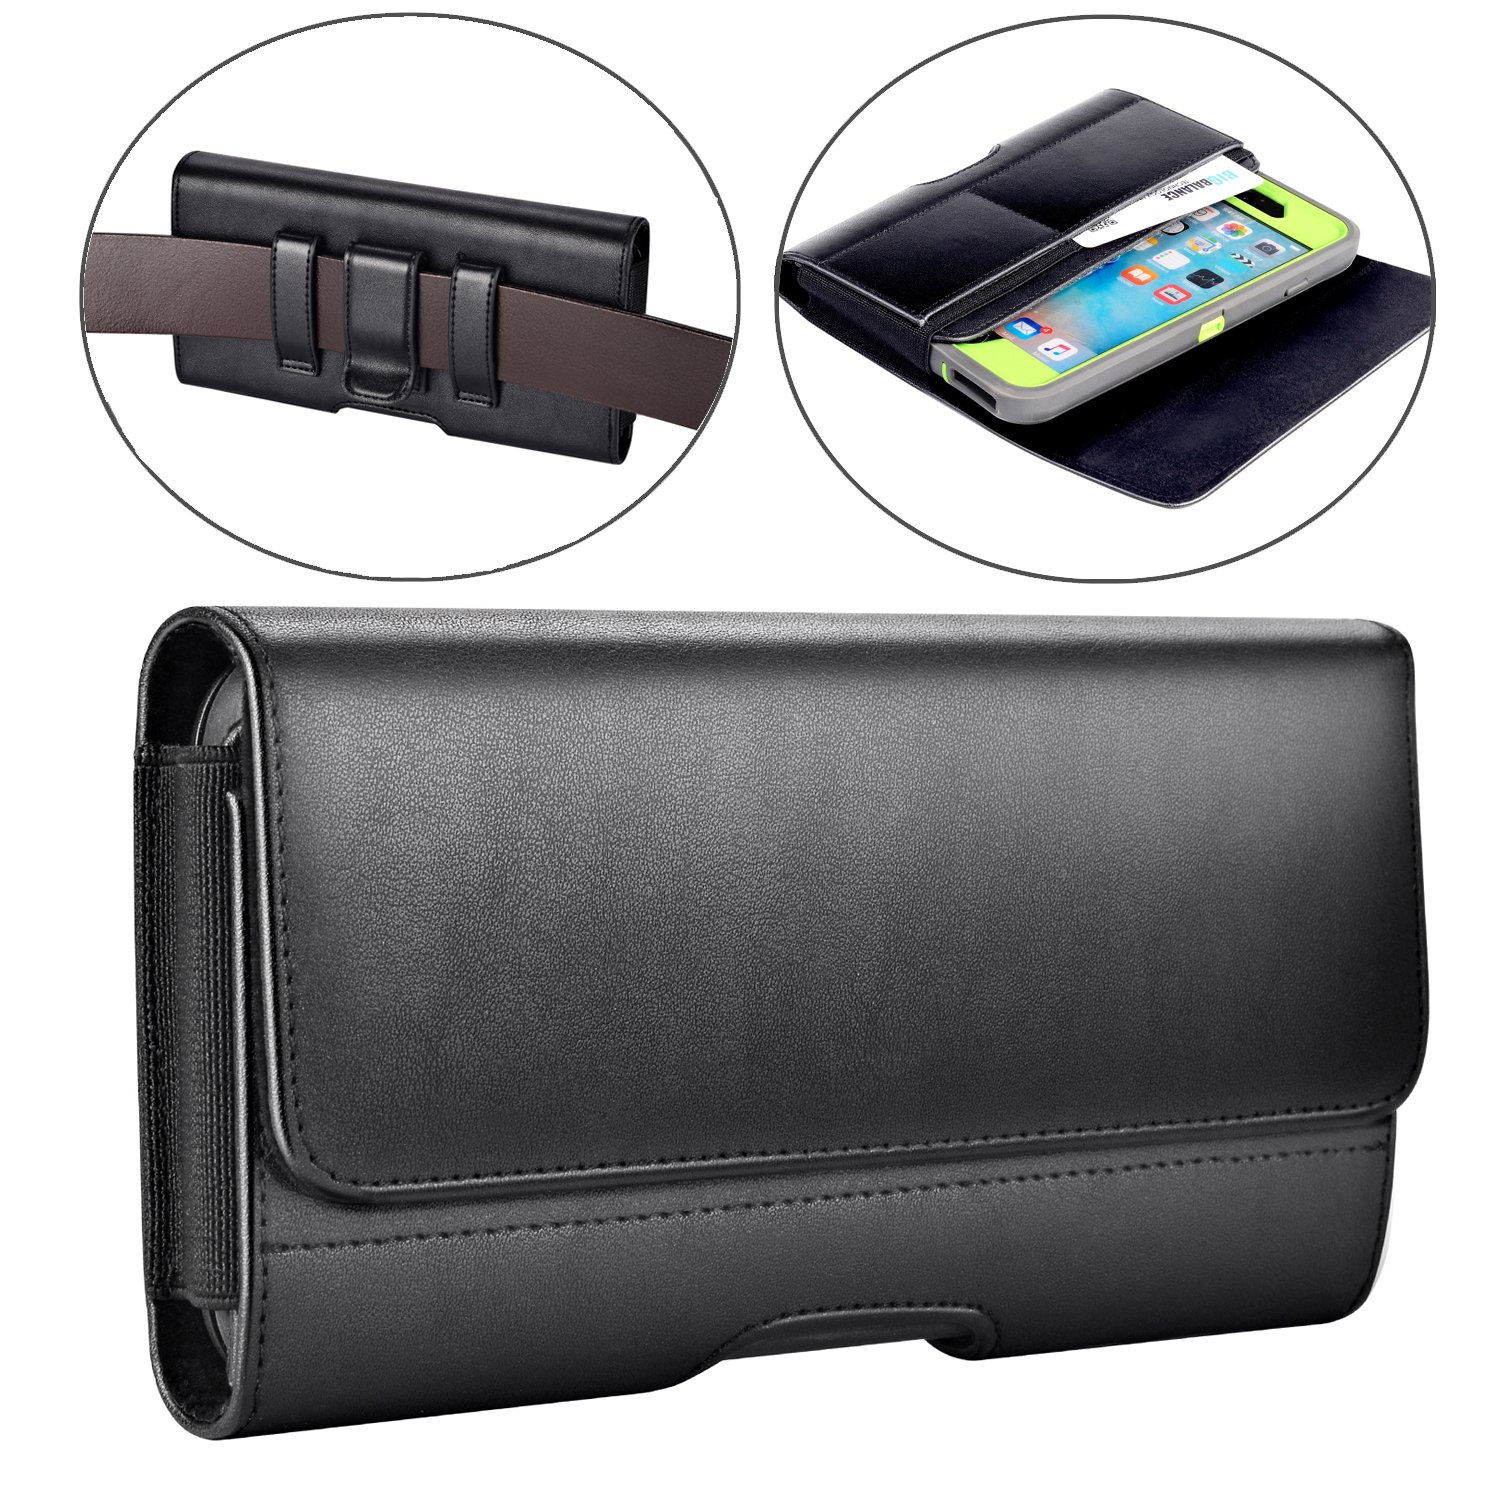 iPhone 8 Plus Holster, iPhone 7 Plus Belt Clip Case,Leather Holster Pouch Case with ID Card Holder for iPhone 6 Plus 6s Plus 8 Plus (Fits with Otterbox Defender case/Lifeproof Case/ Battery Case On)